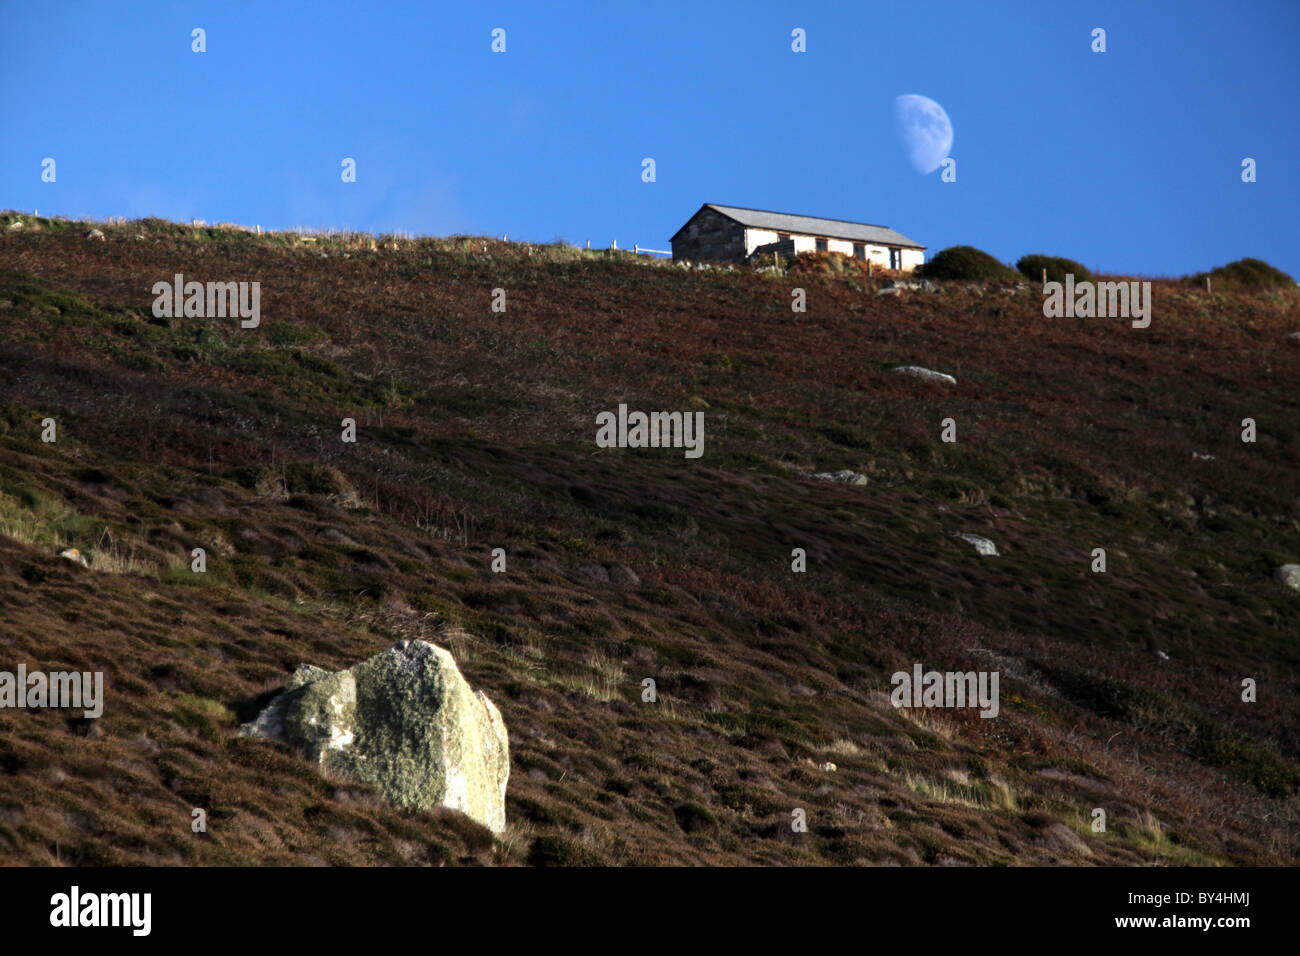 A solitary house with a moon above near Nanjulian in Penwith, Cornwall, England. - Stock Image